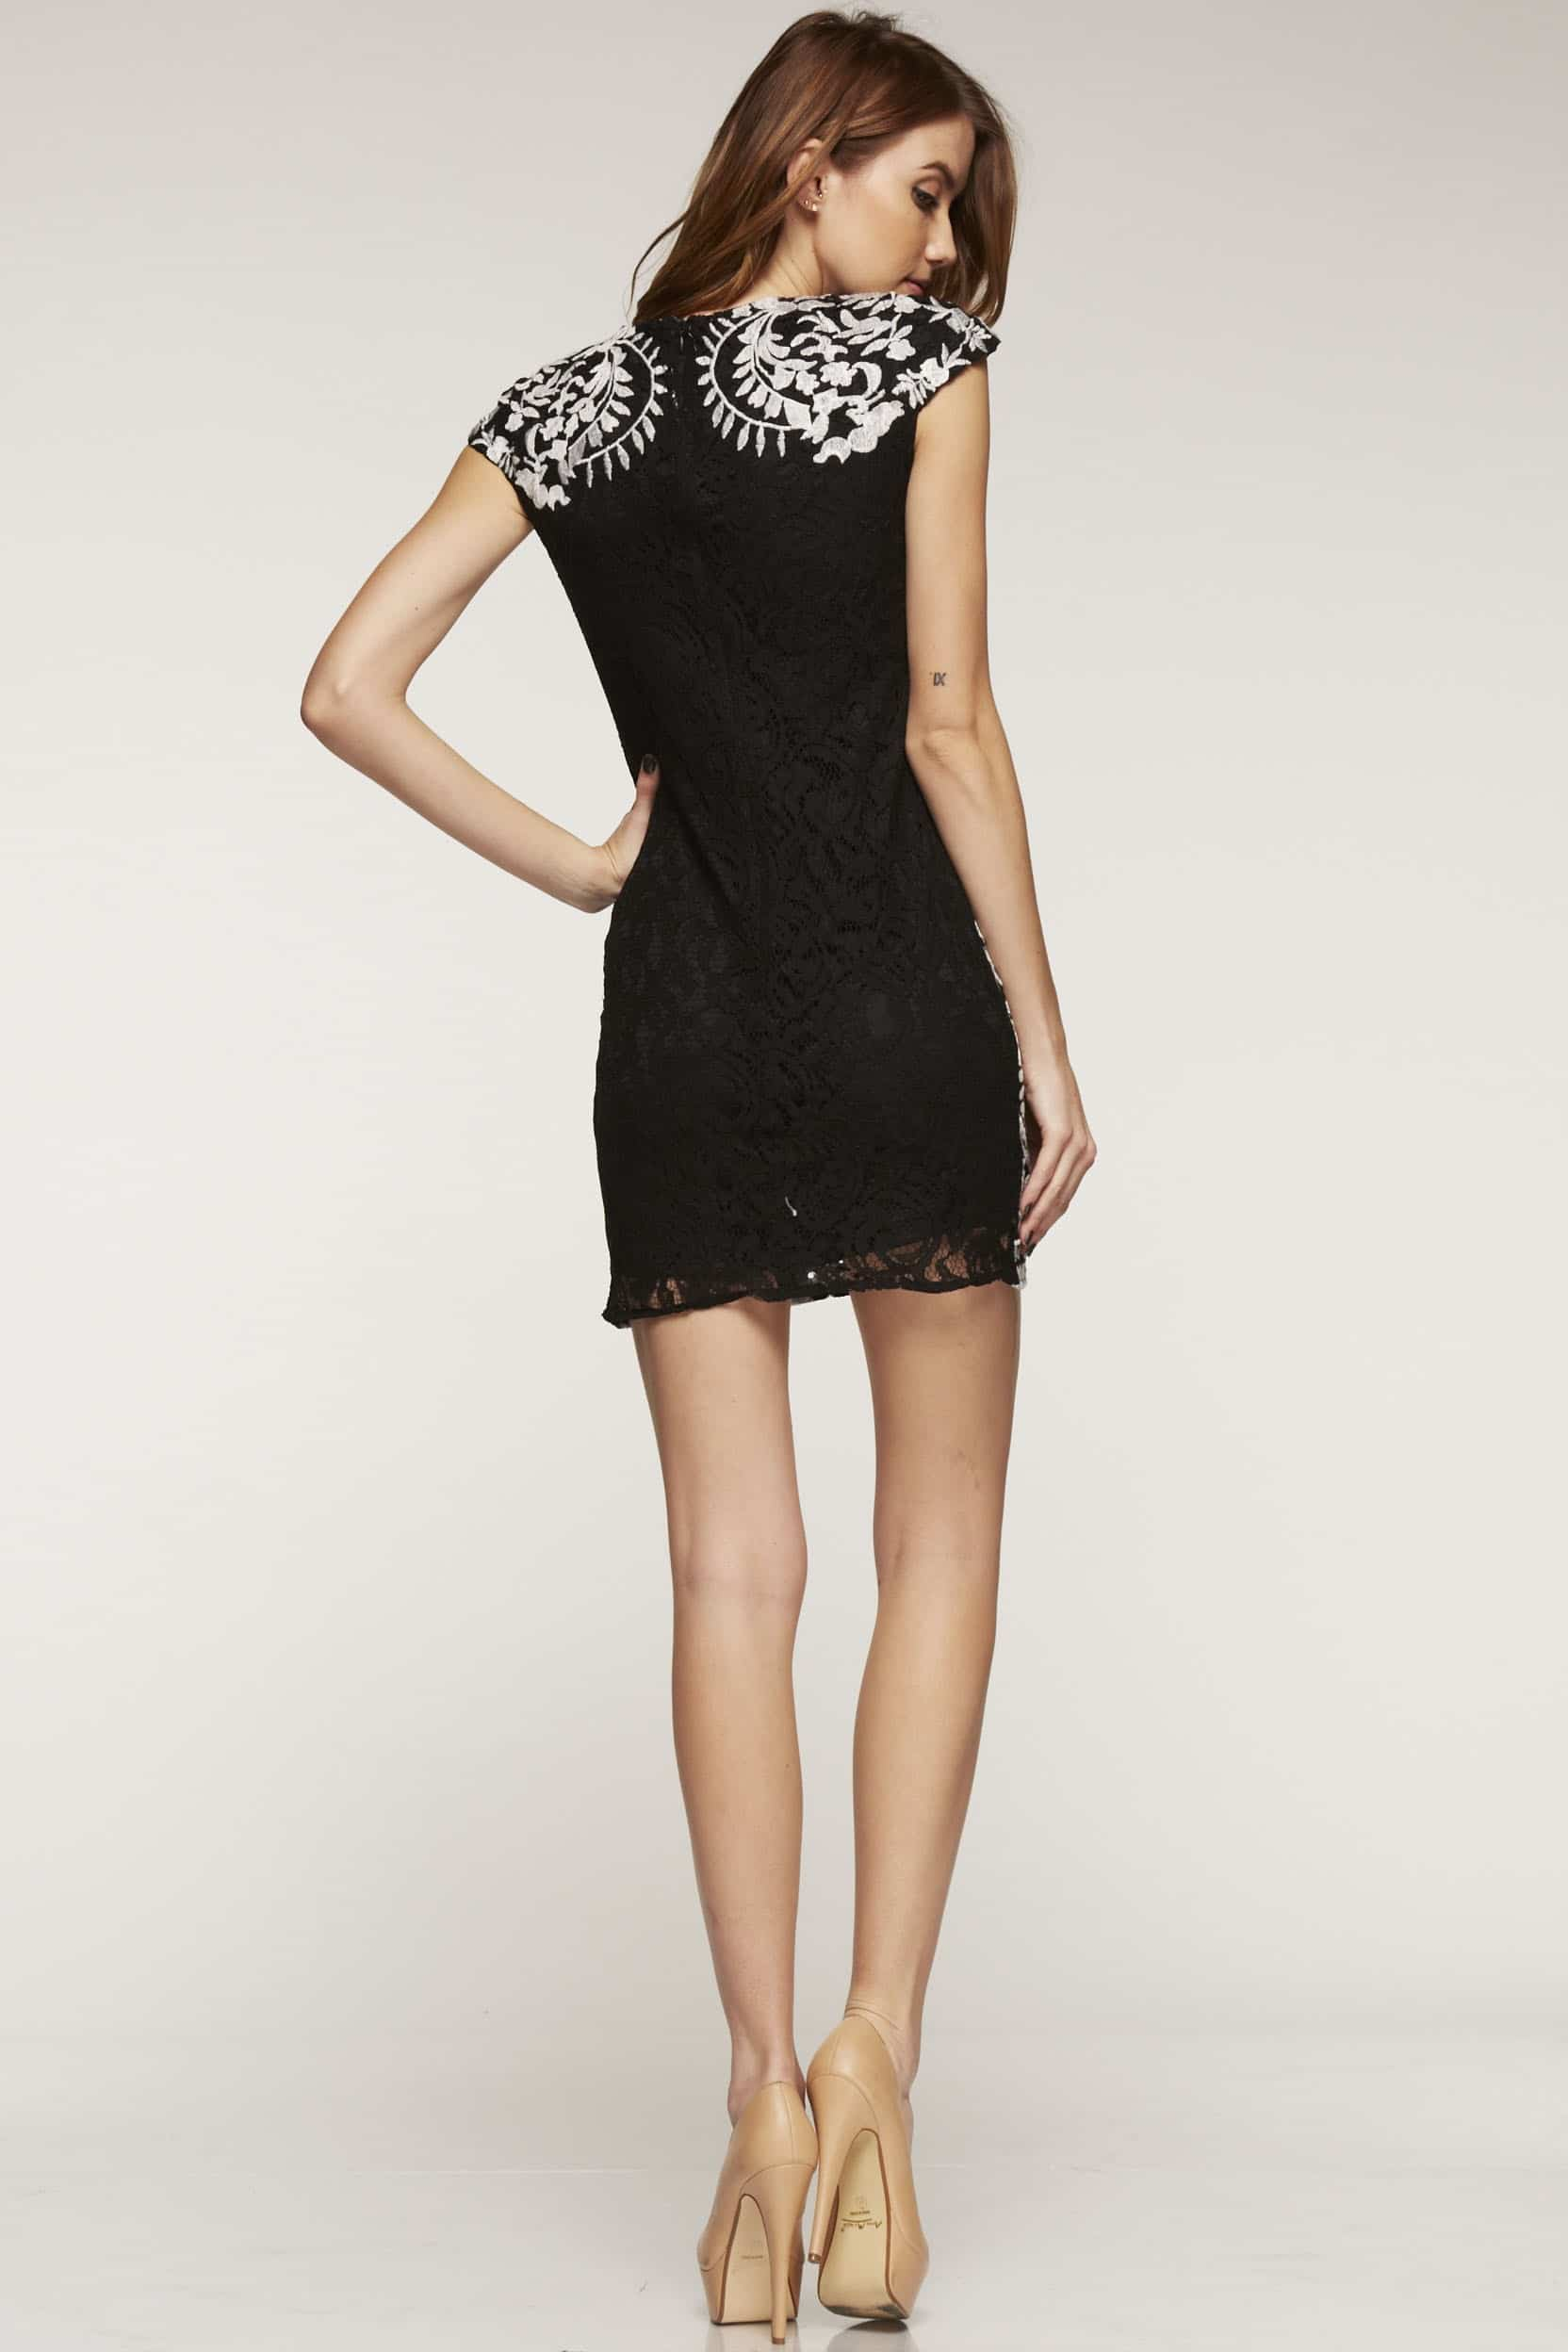 Wedding Black And White Lace Dress chanel inspired lace shift dress in black white alila boutique dress